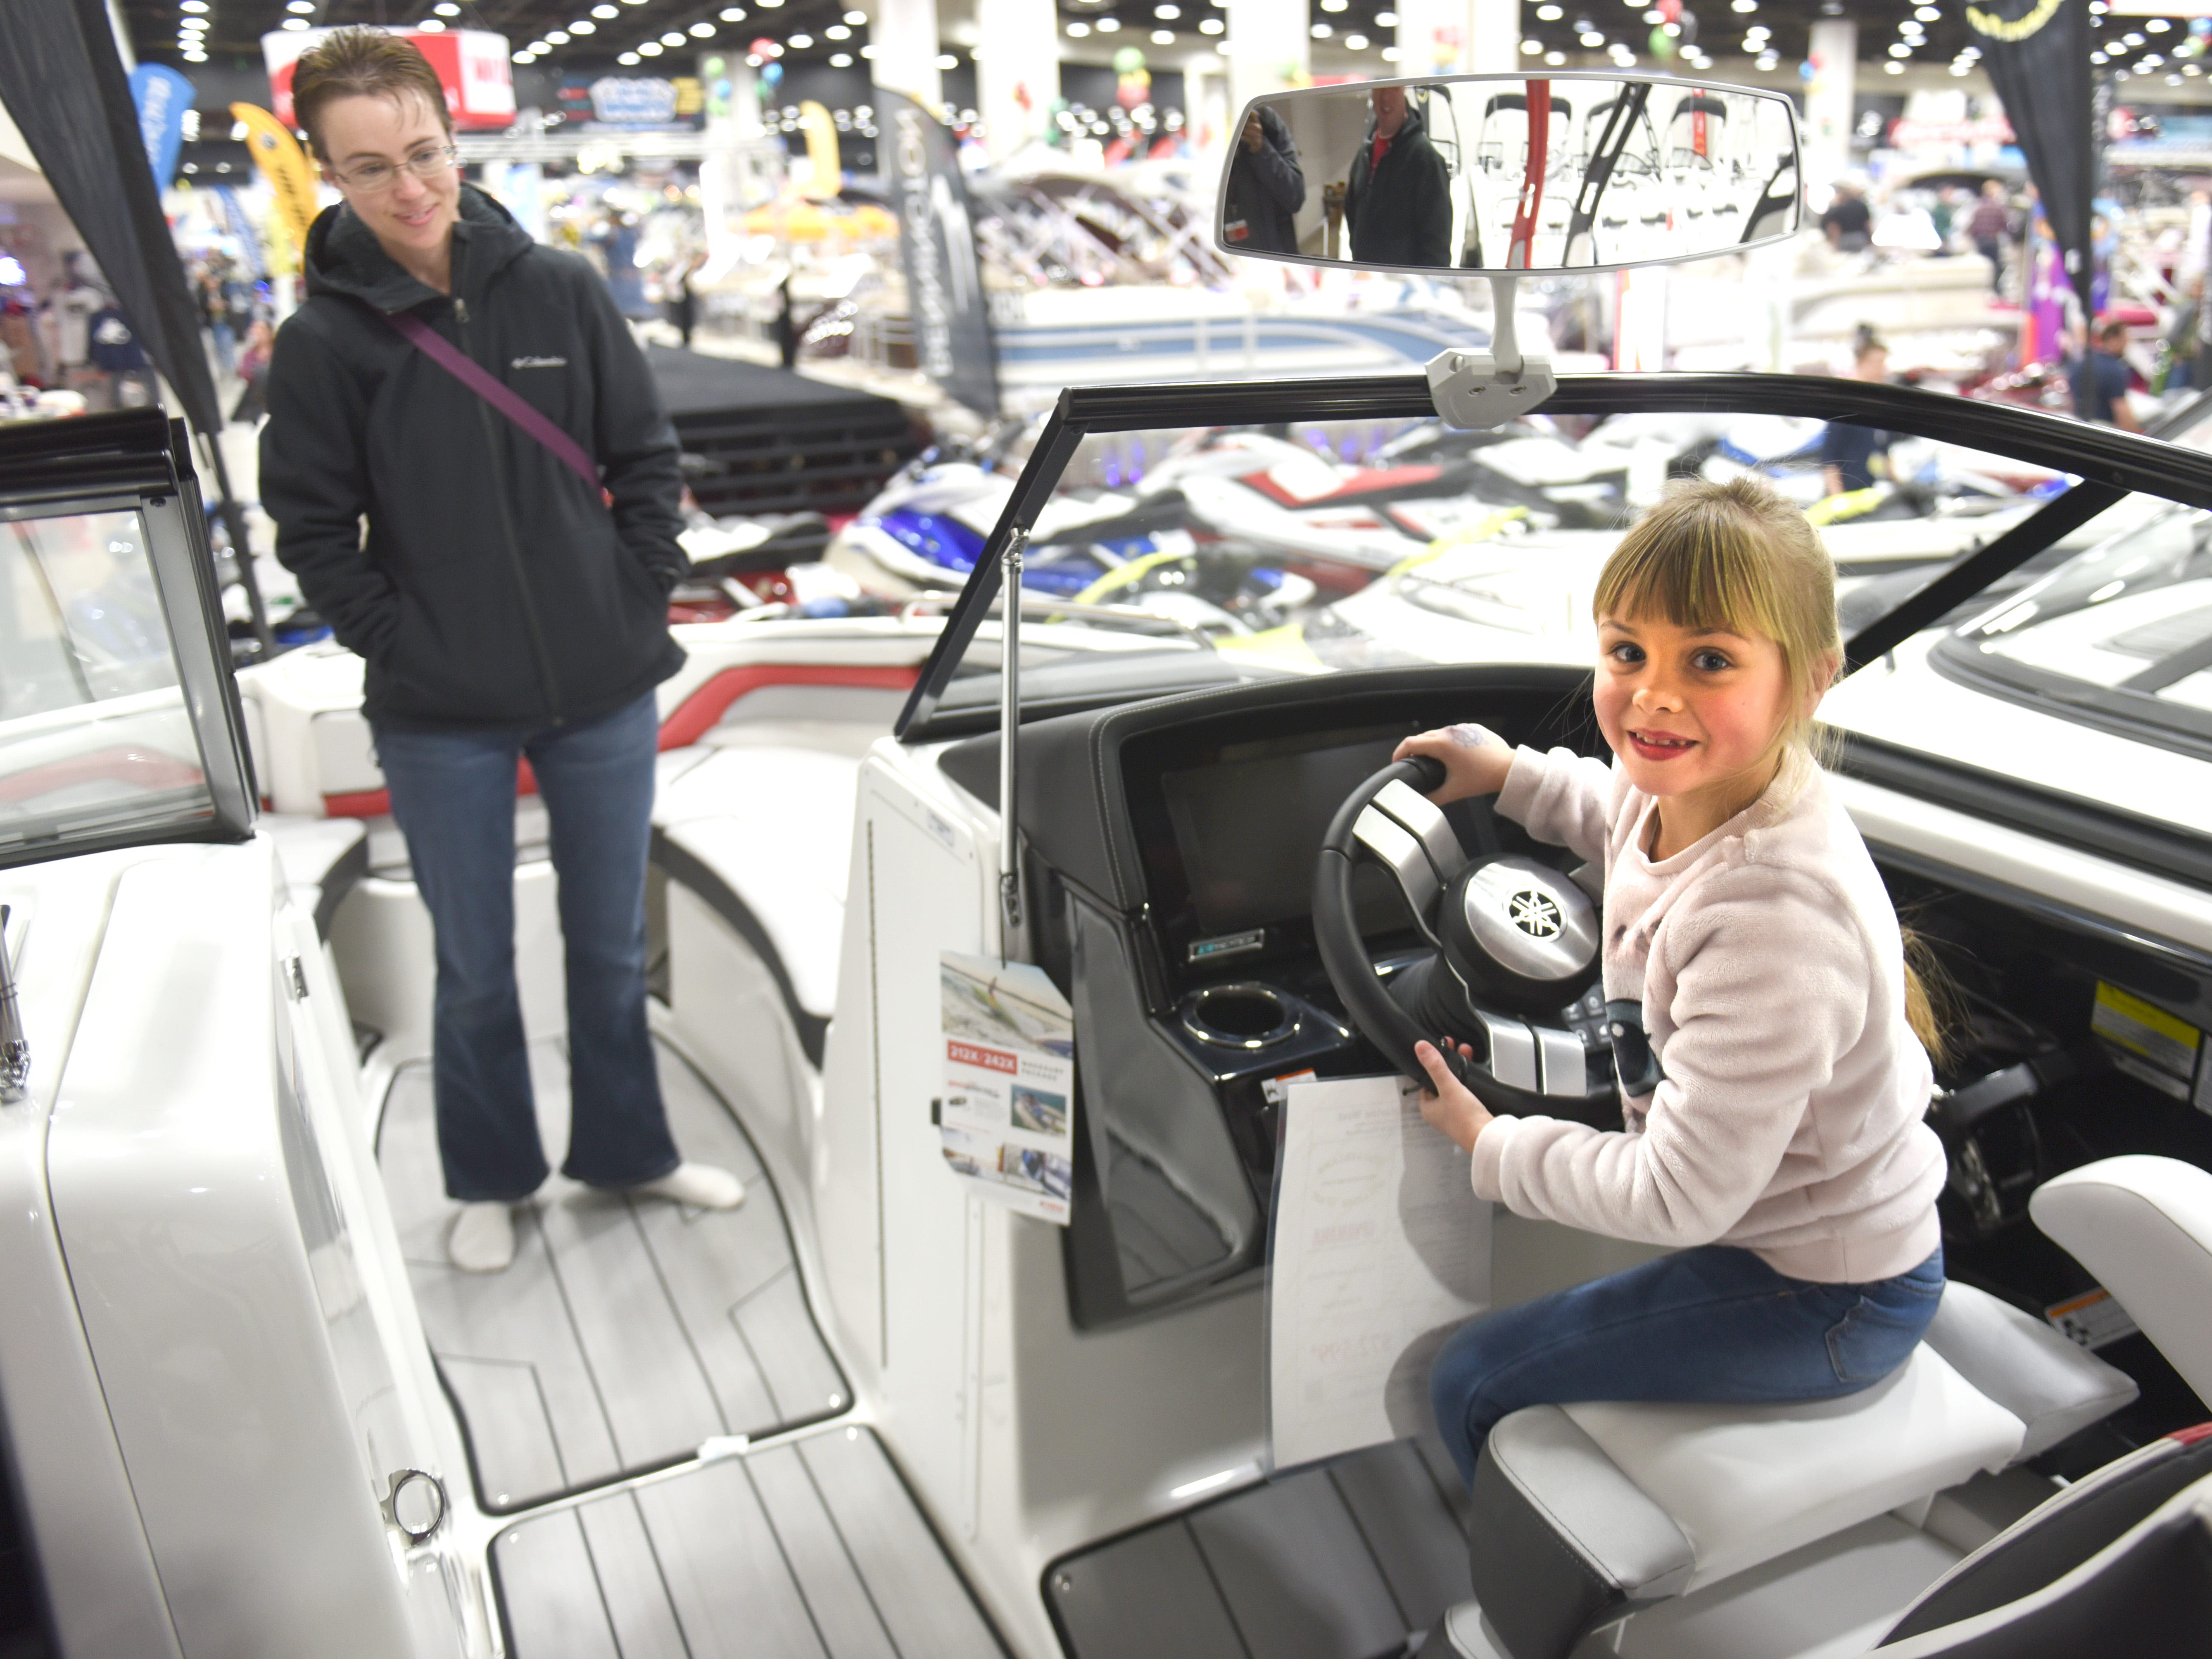 Caylee Young (right), of Monroe, has fun at the wheel of a watercraft from Wonderland Marine West of Howell, as her mother Candy Young watches at the Detroit Boat Show at Cobo Center in Detroit on Saturday.